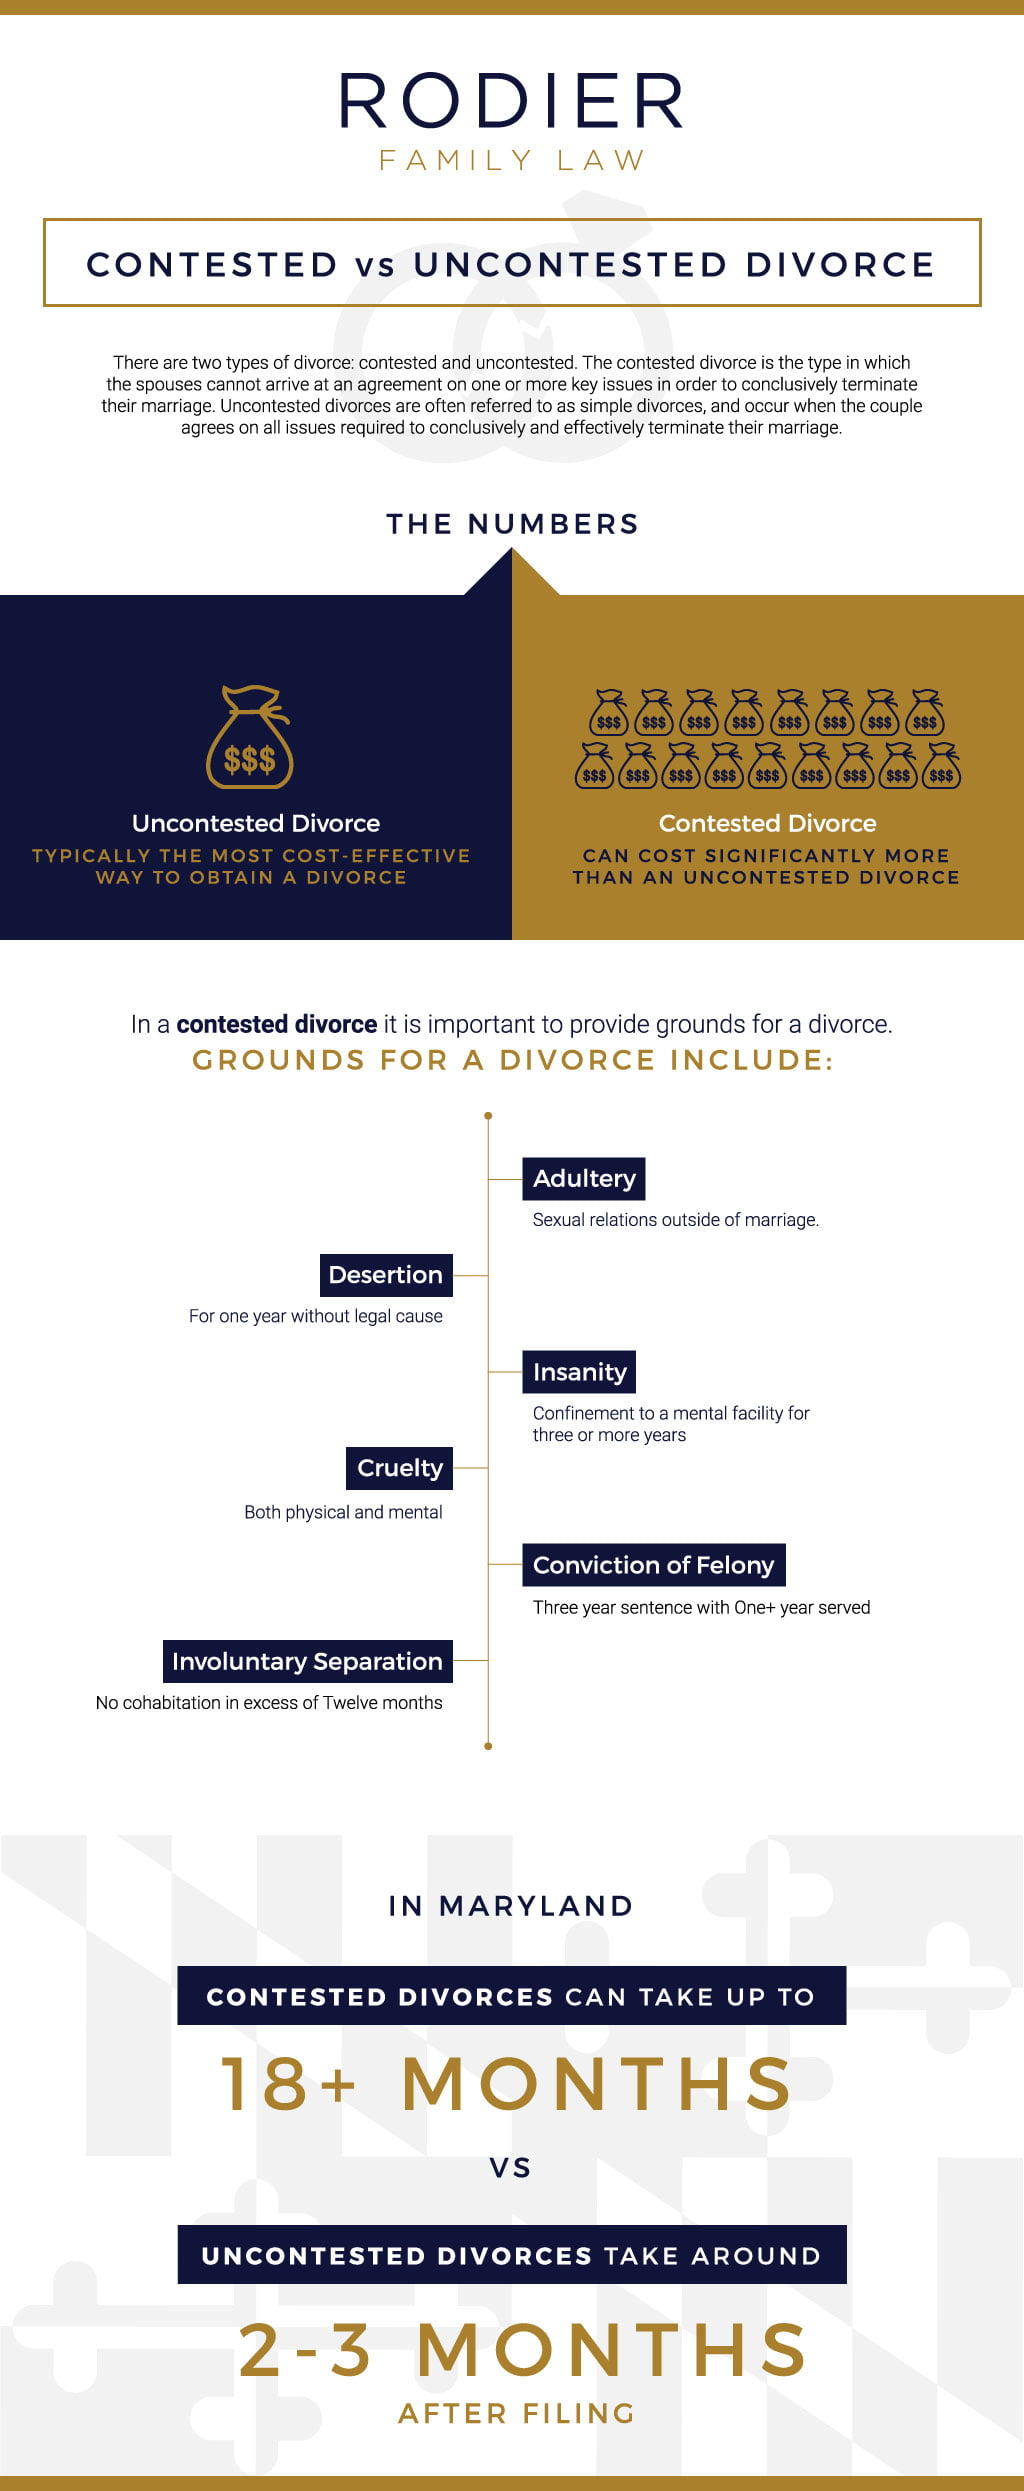 contested vs uncontested divorce an infographic rodier family law